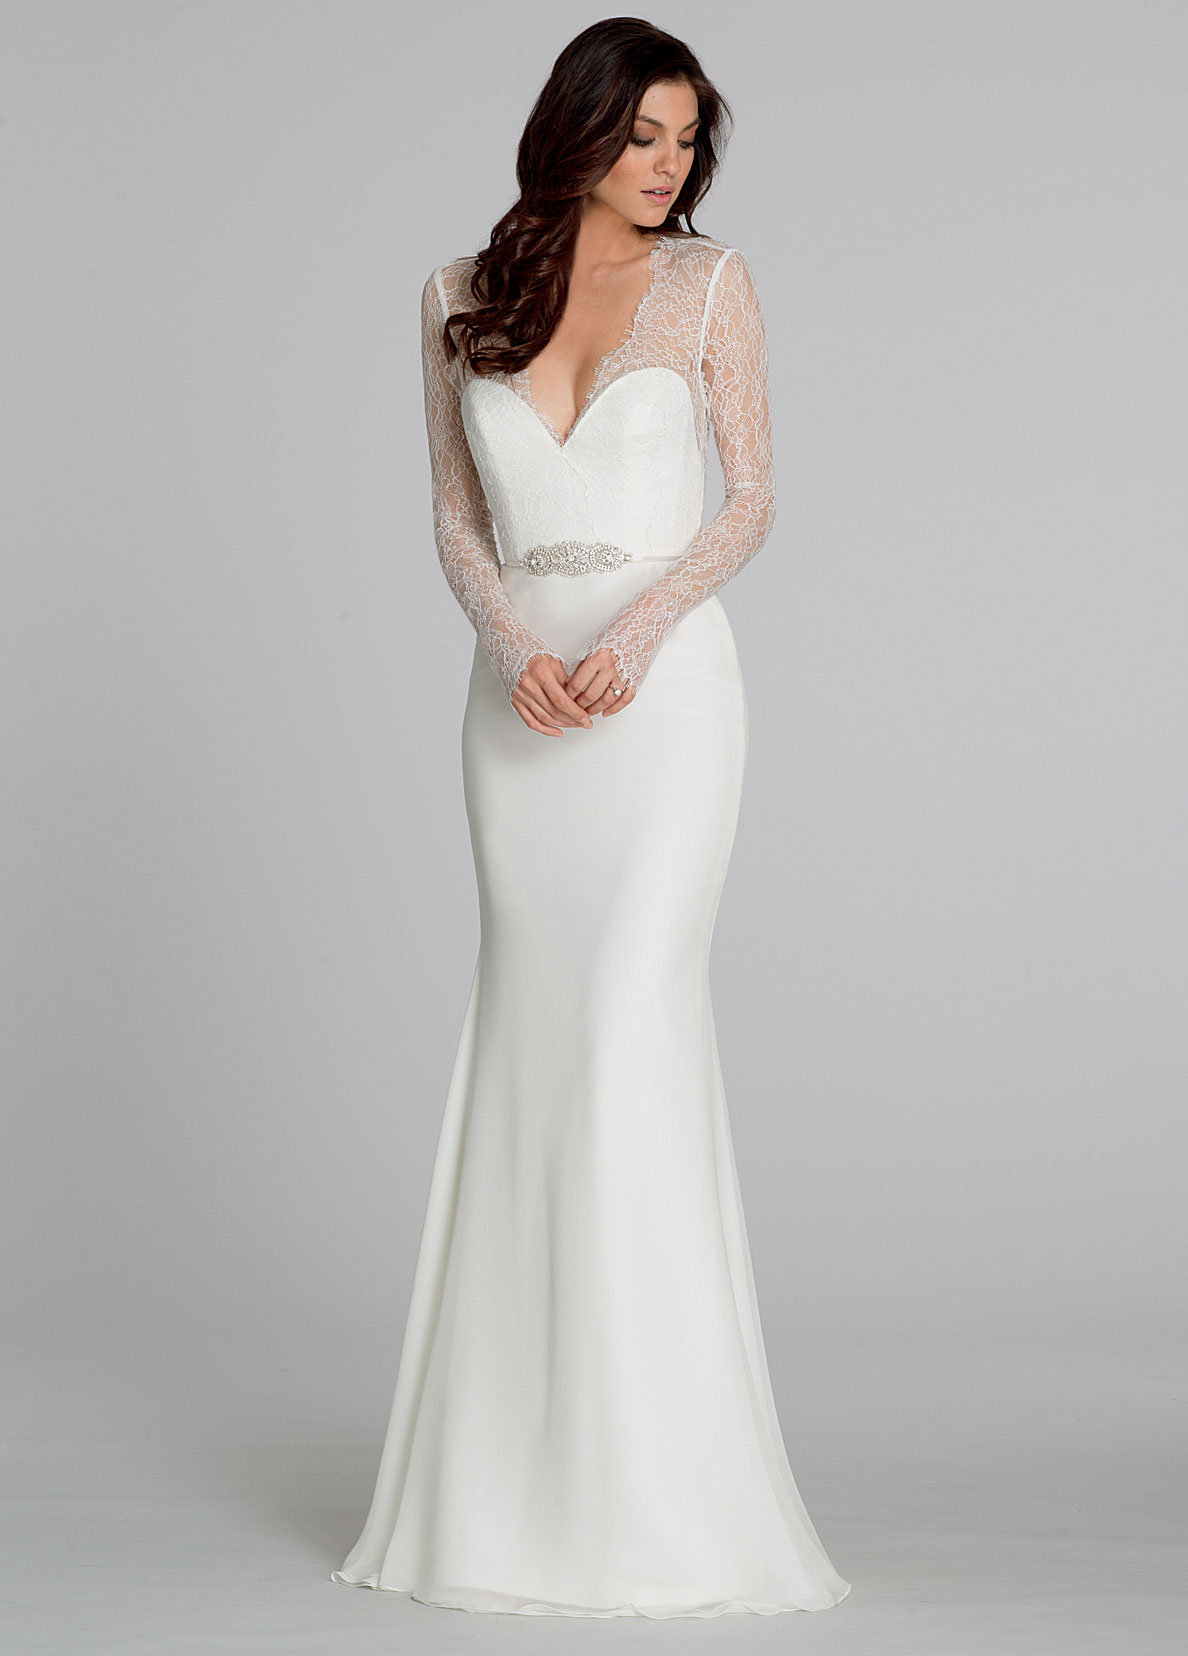 Bridal gowns and wedding dresses by jlm couture style 2551 for Long sleeve chiffon wedding dress